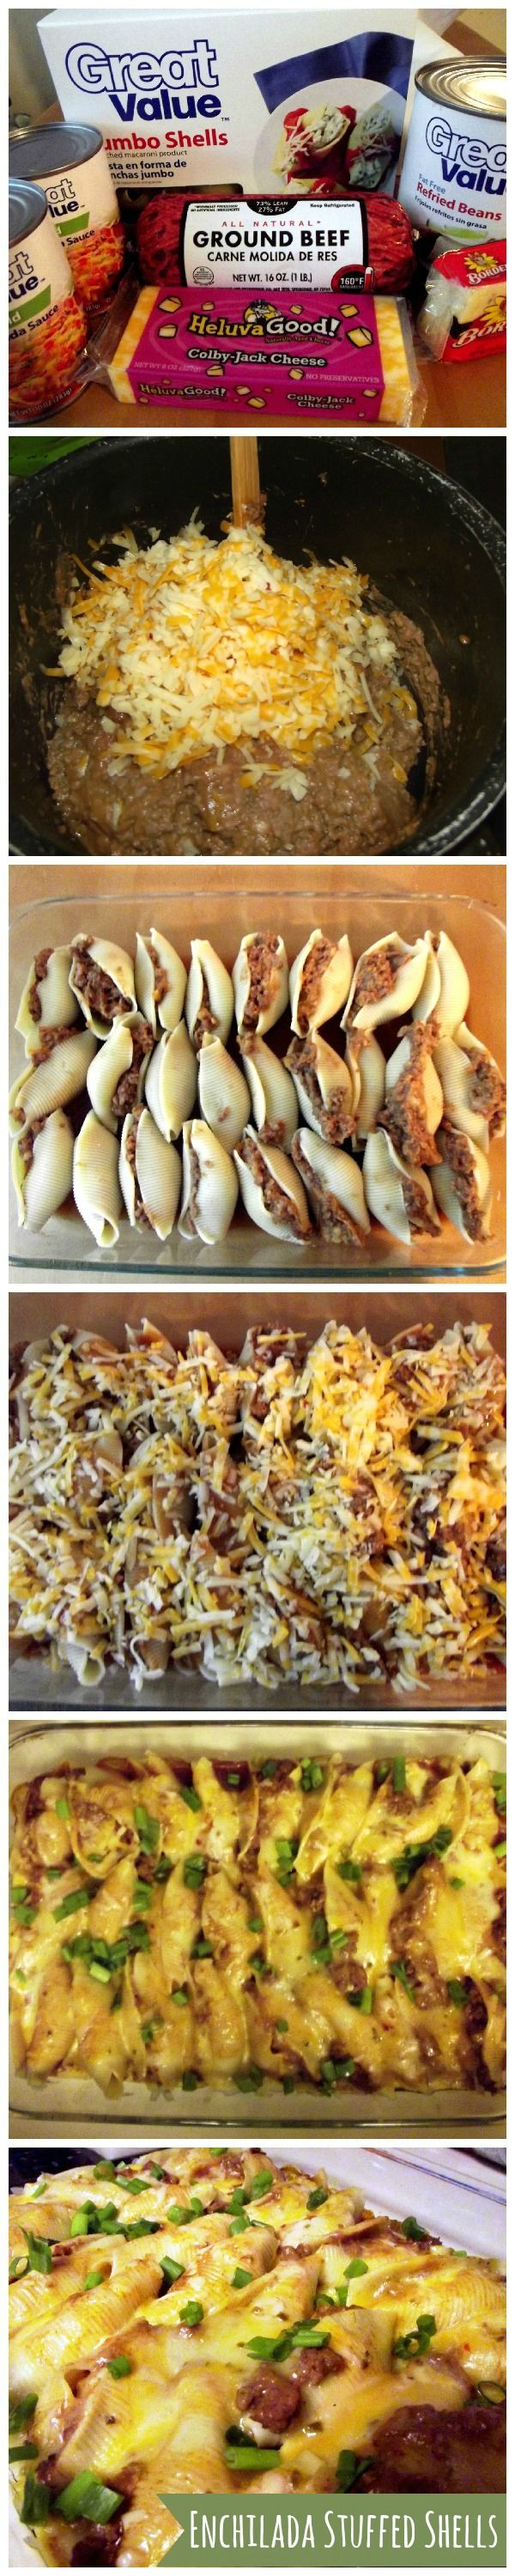 Enchilada Stuffed shells. Makes a LOT! Could halve the recipe for dinner. We used ground turkey and want to use beef next time